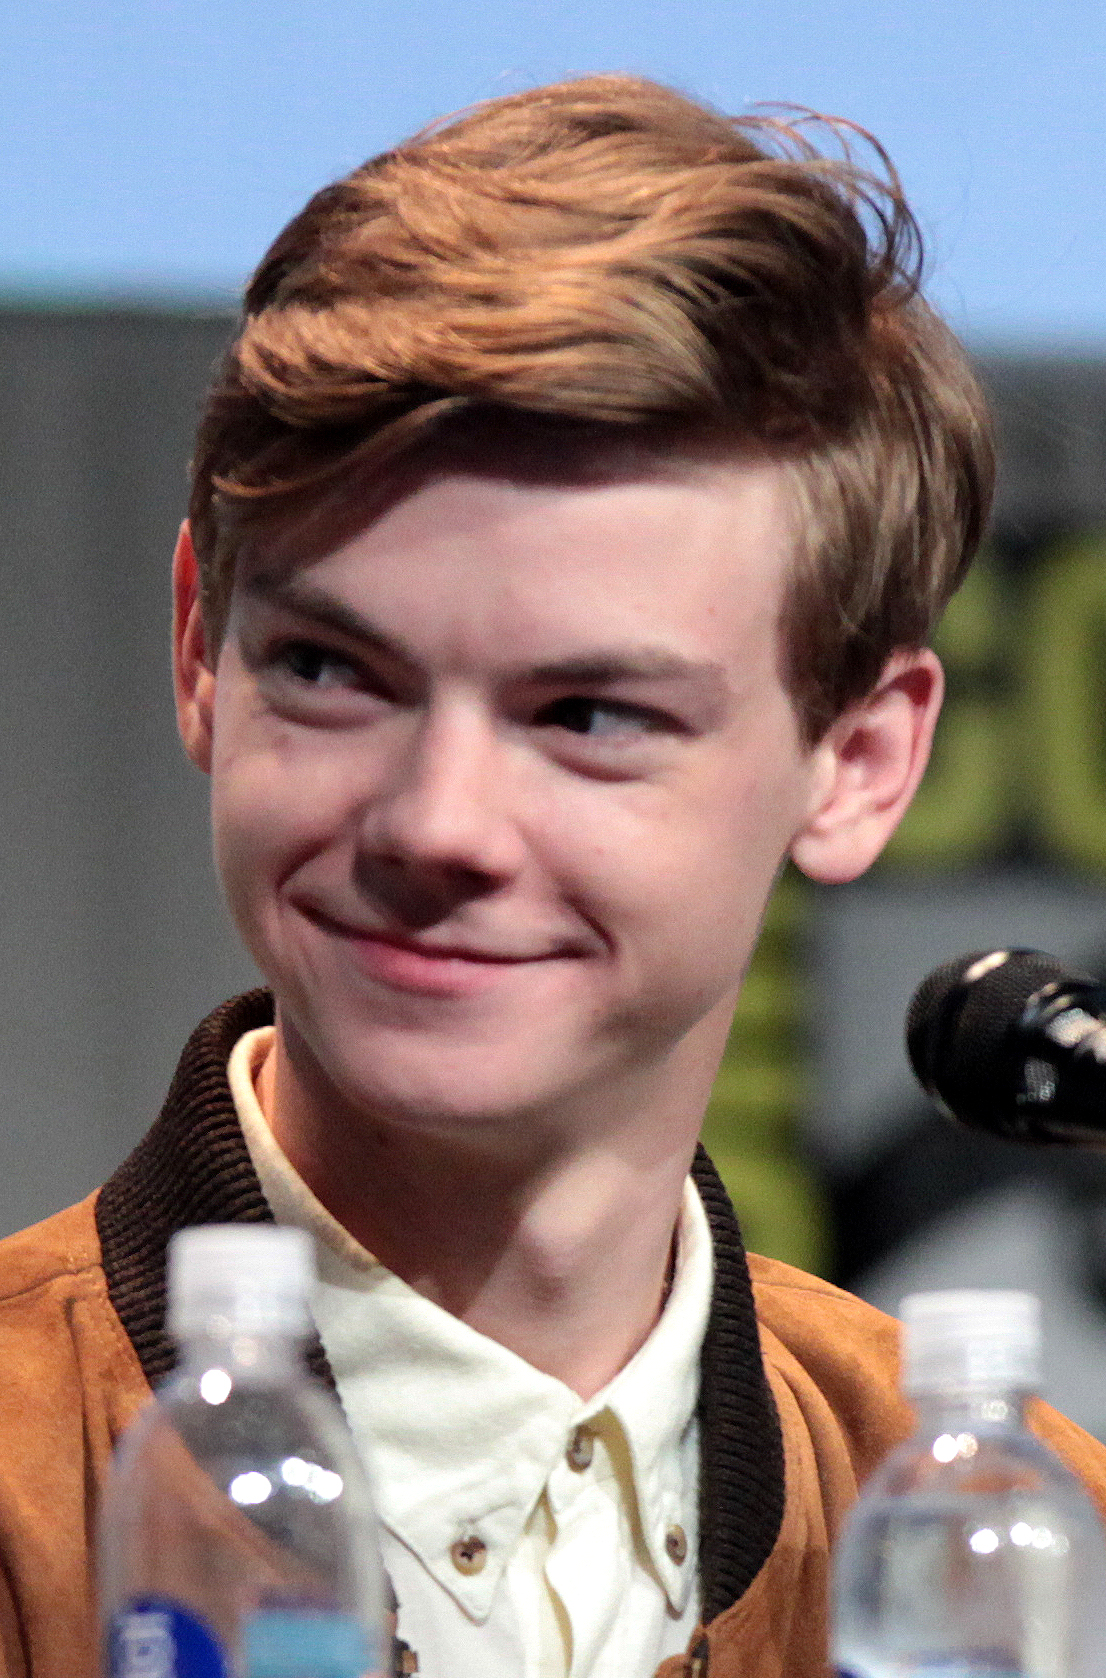 Thomas Sangster (born 1990)